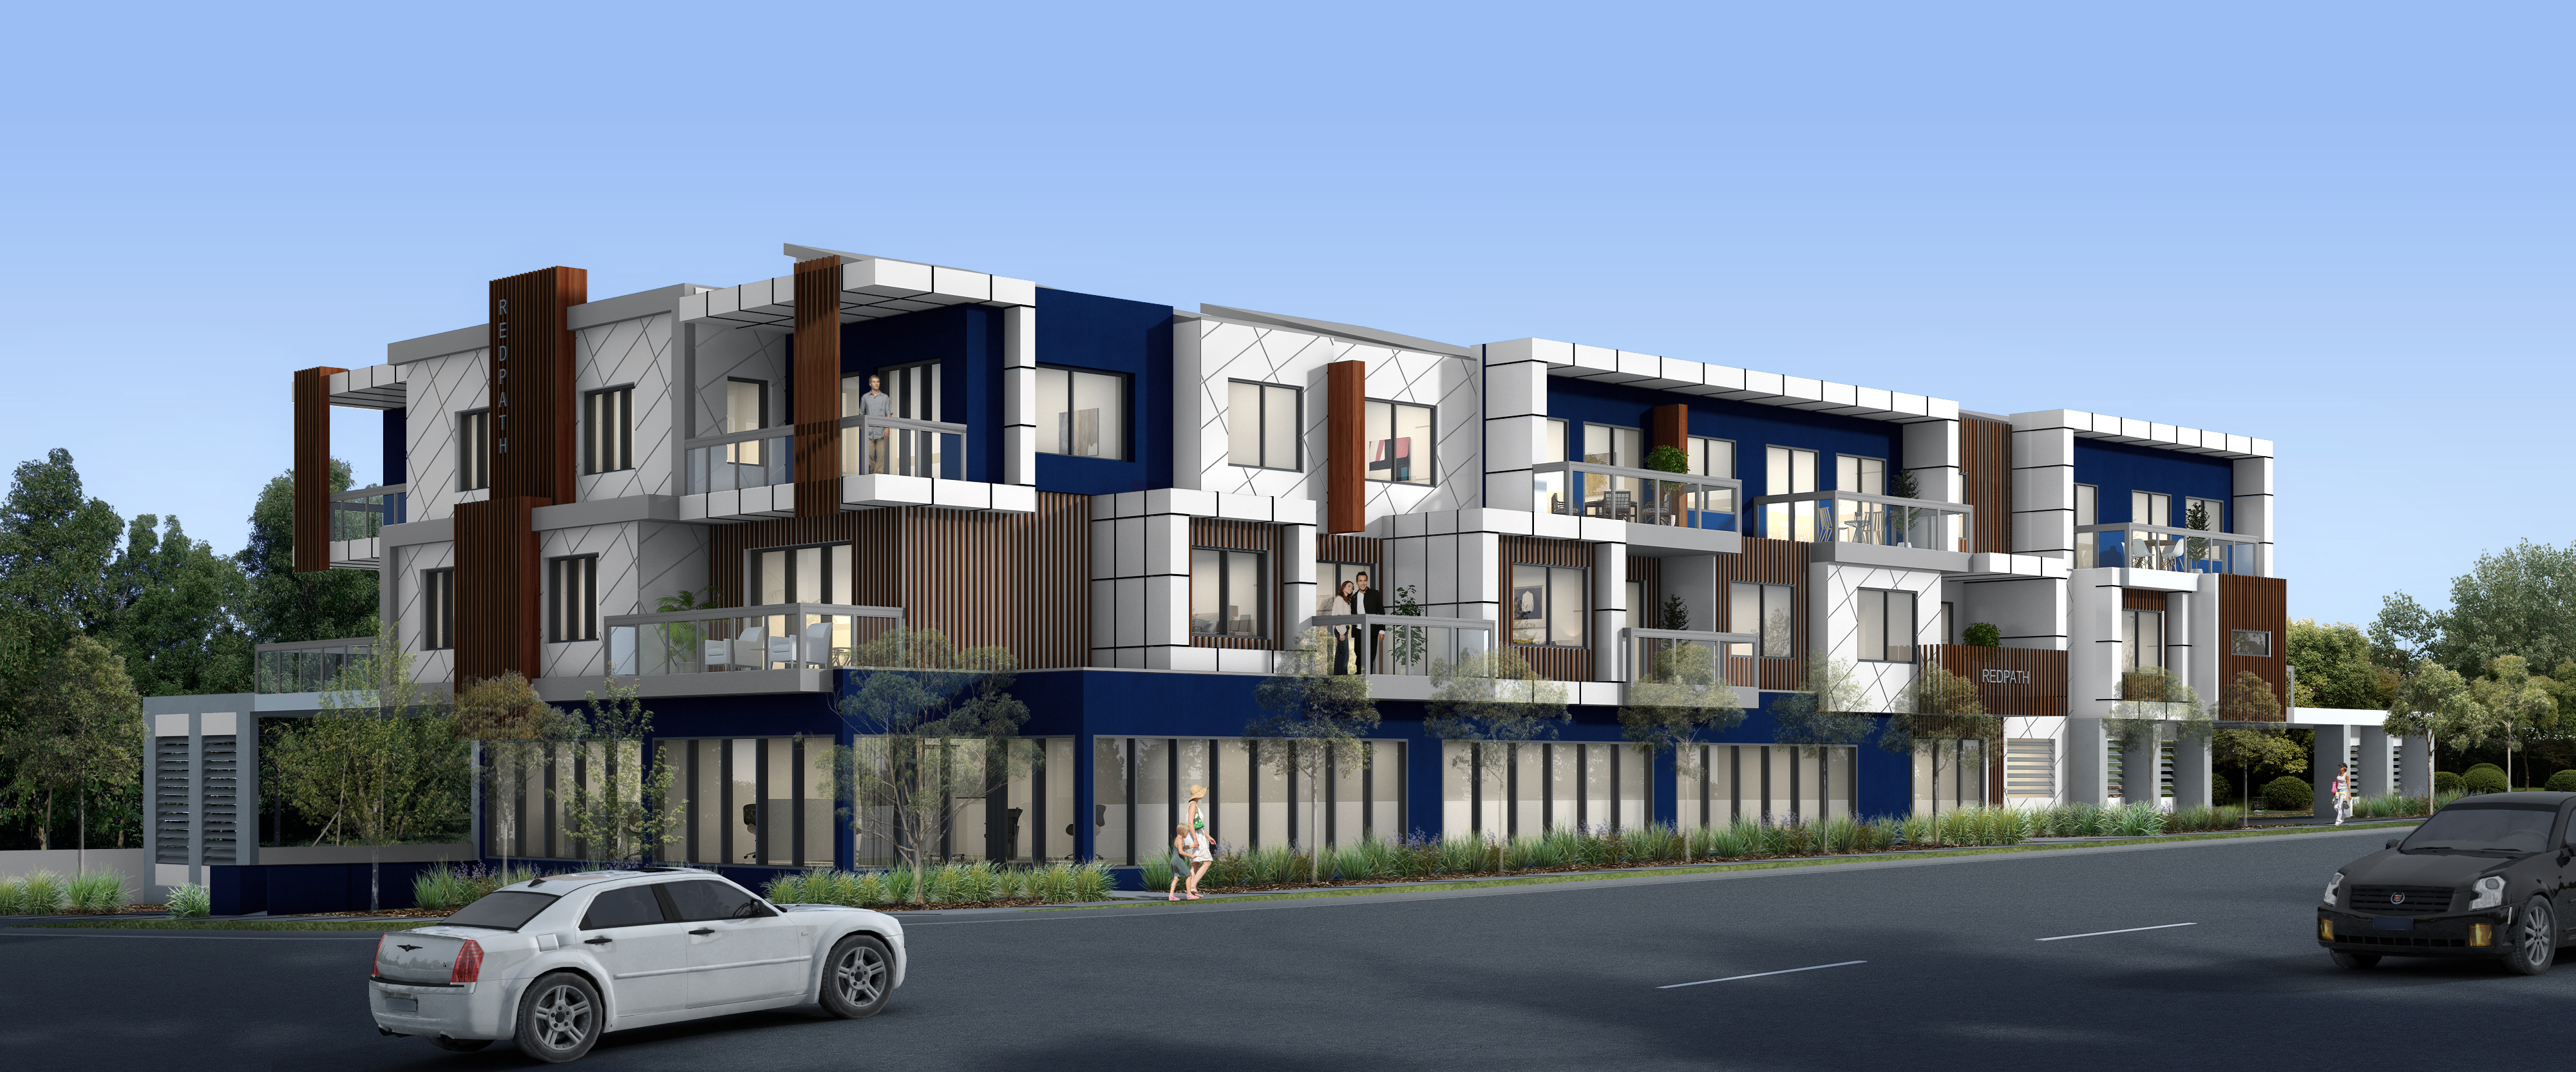 Blueprint architectural design consultants welcome to blueprint malvernweather Choice Image